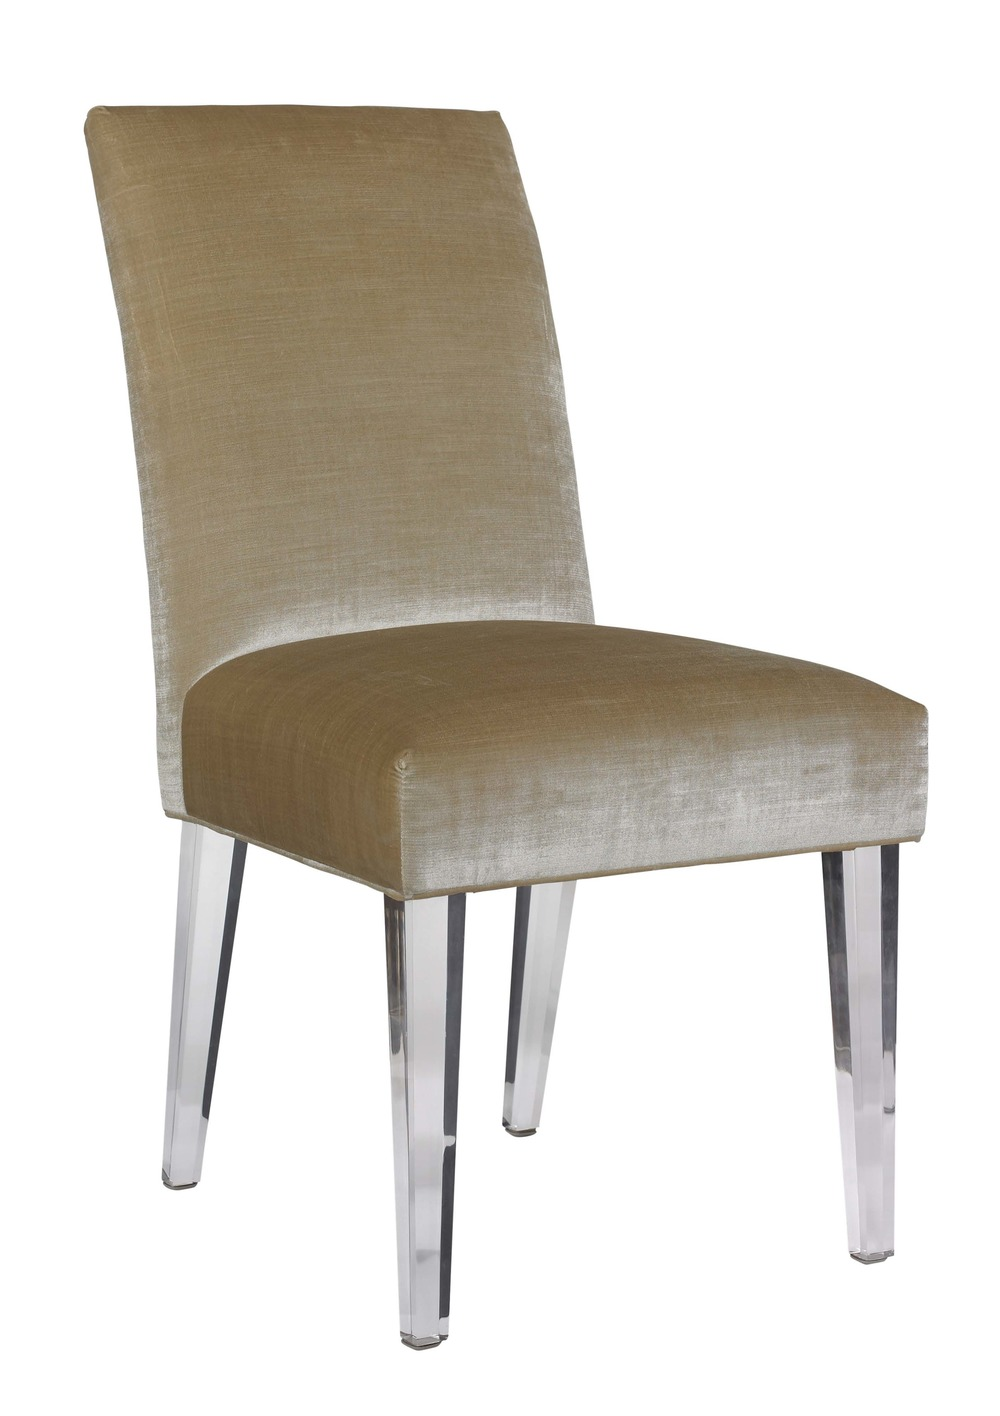 Designmaster Furniture - Electra Side Chair